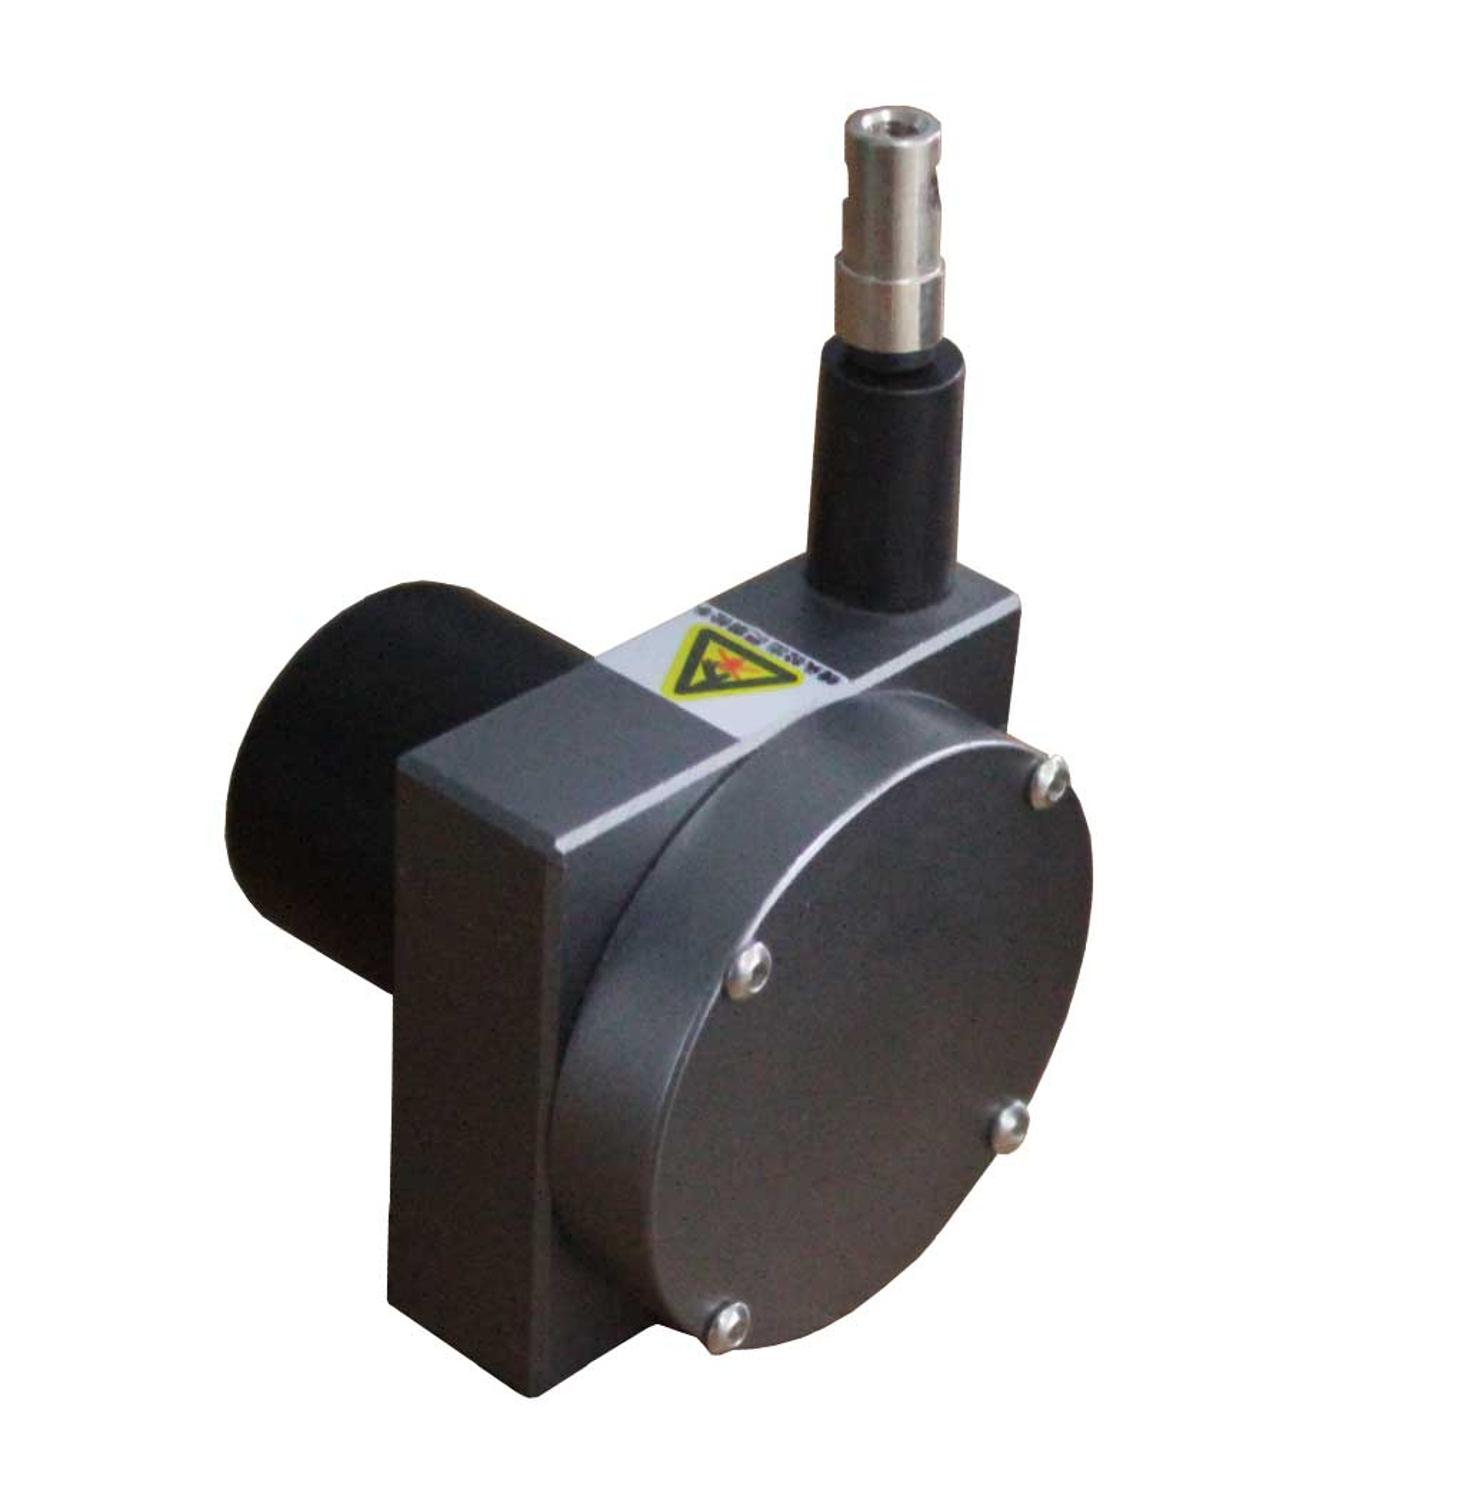 WXY60-LWXY80-L Drawstring Displacement Cable Sensor Encoder Gate Opener High Precision Pulse Signal